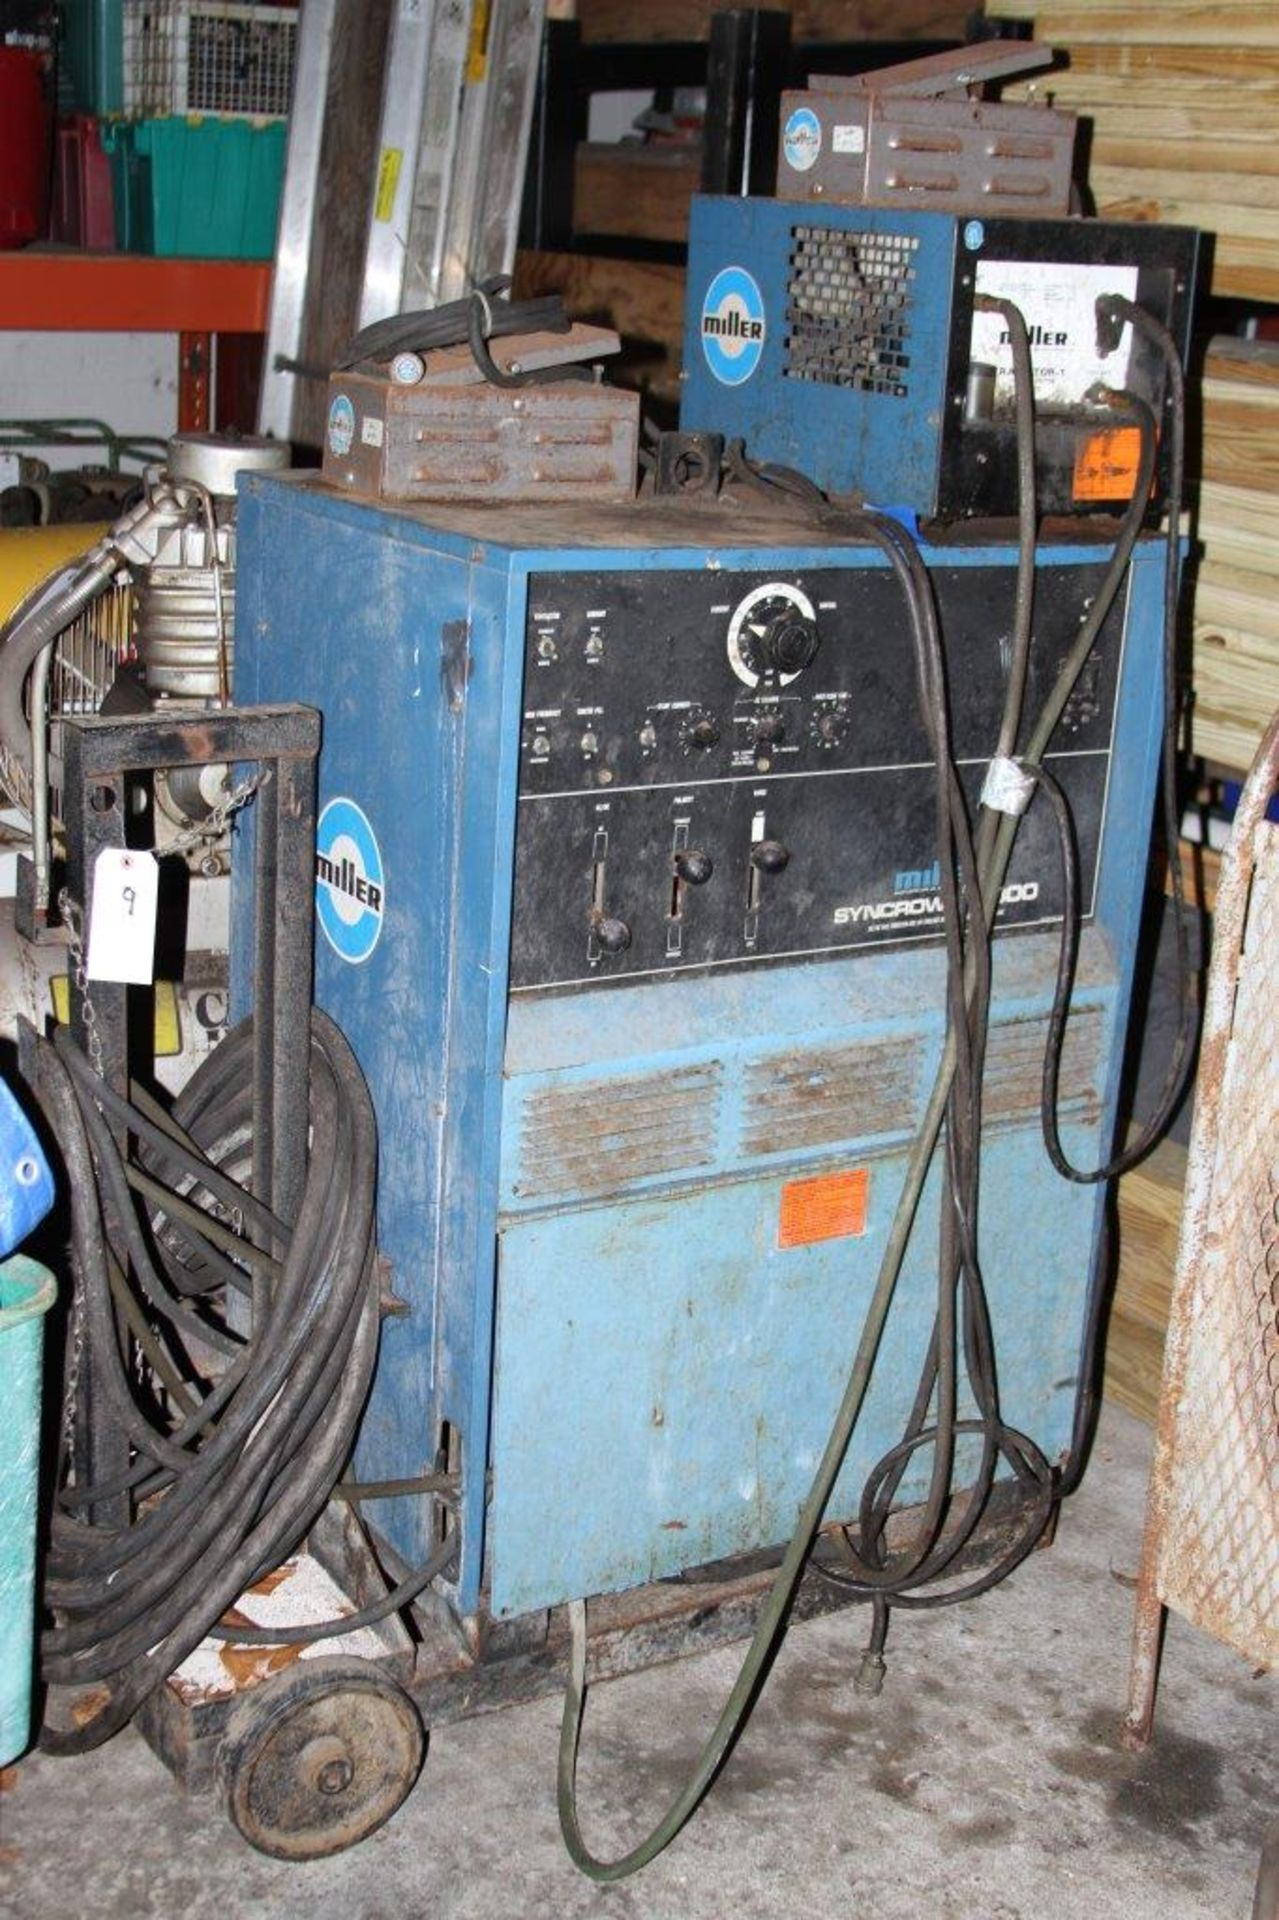 Lot 9 - Miller Syncrowave 300 AC/DC Gas Tungenston or Arc or shielded arc metal welder with cooling system